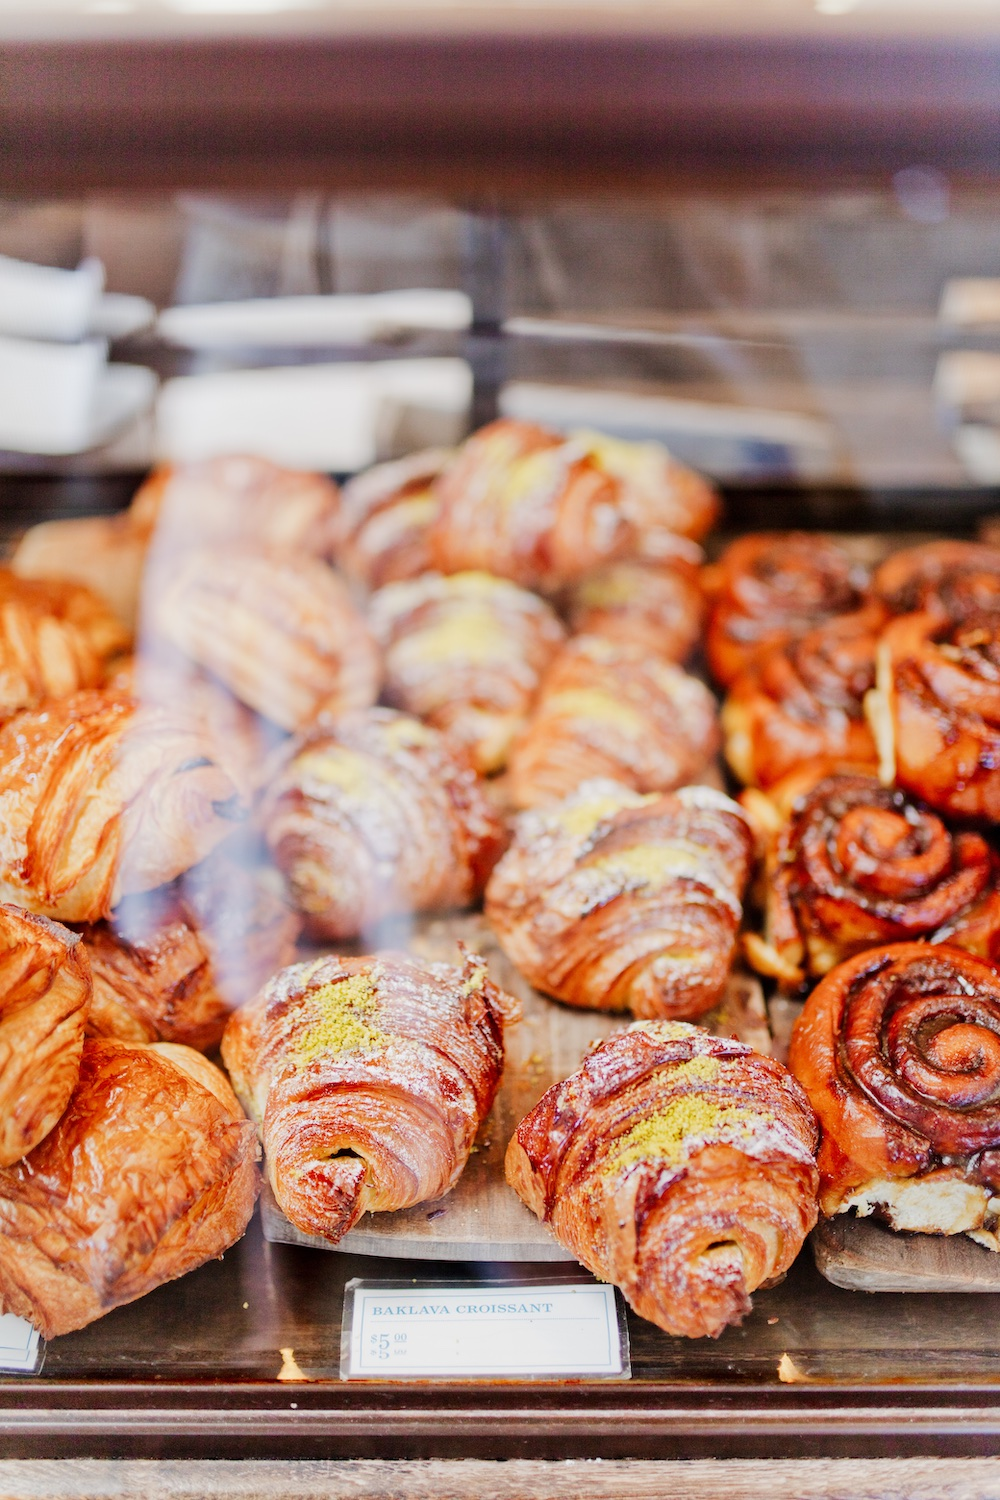 Gjusta Bakery Venice Los Angeles Restaurant Bar Guide First Time | www.thegoldenbun.com